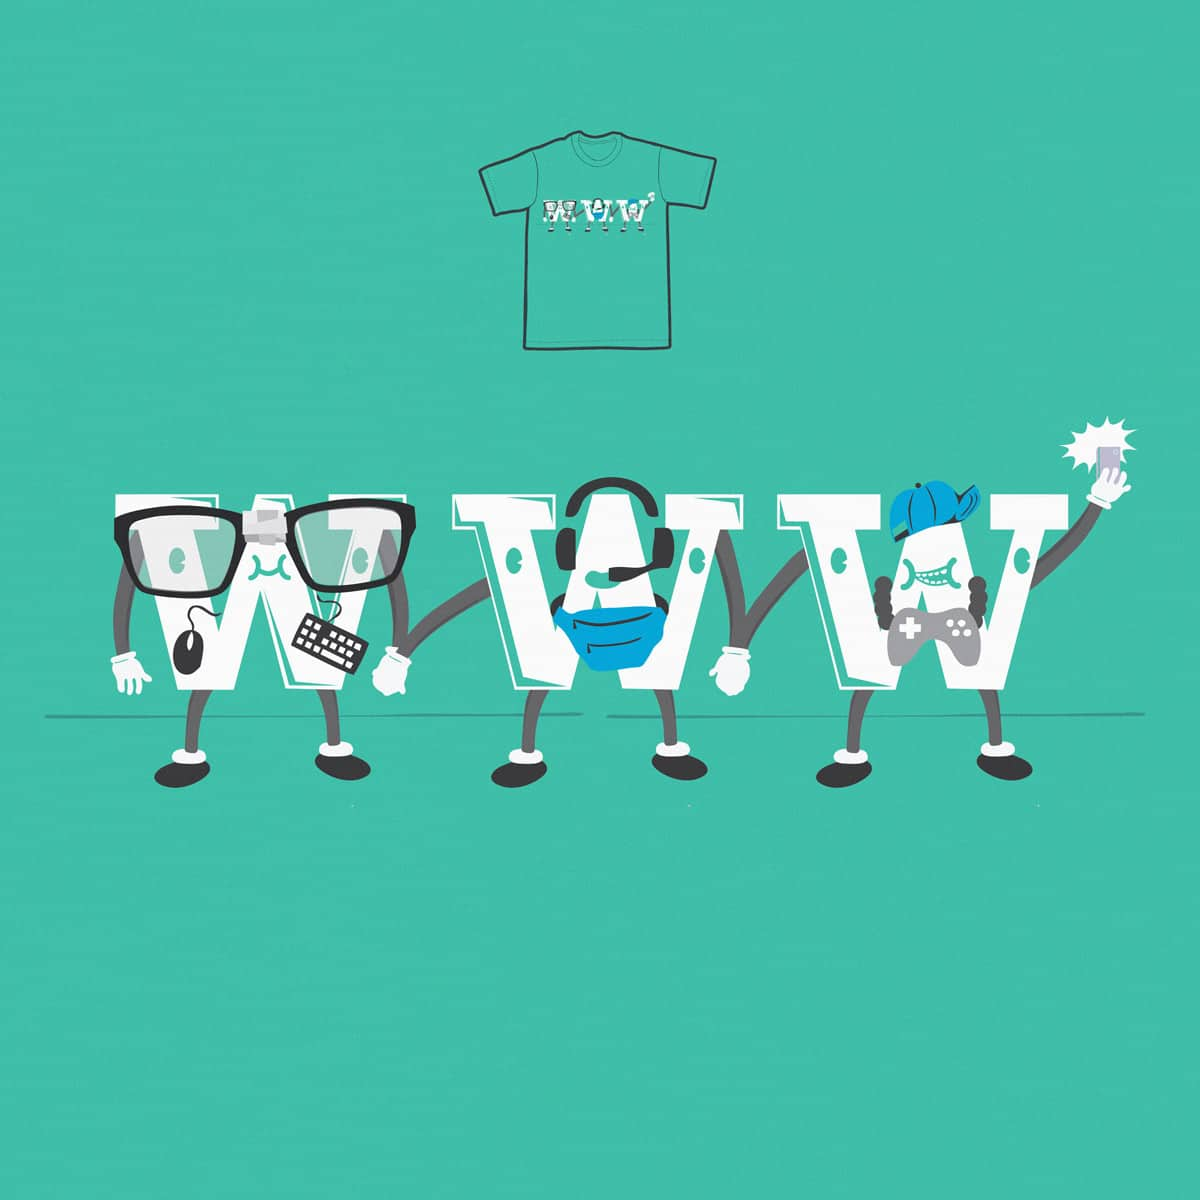 Most Famous Triplets by Skate_e1 on Threadless